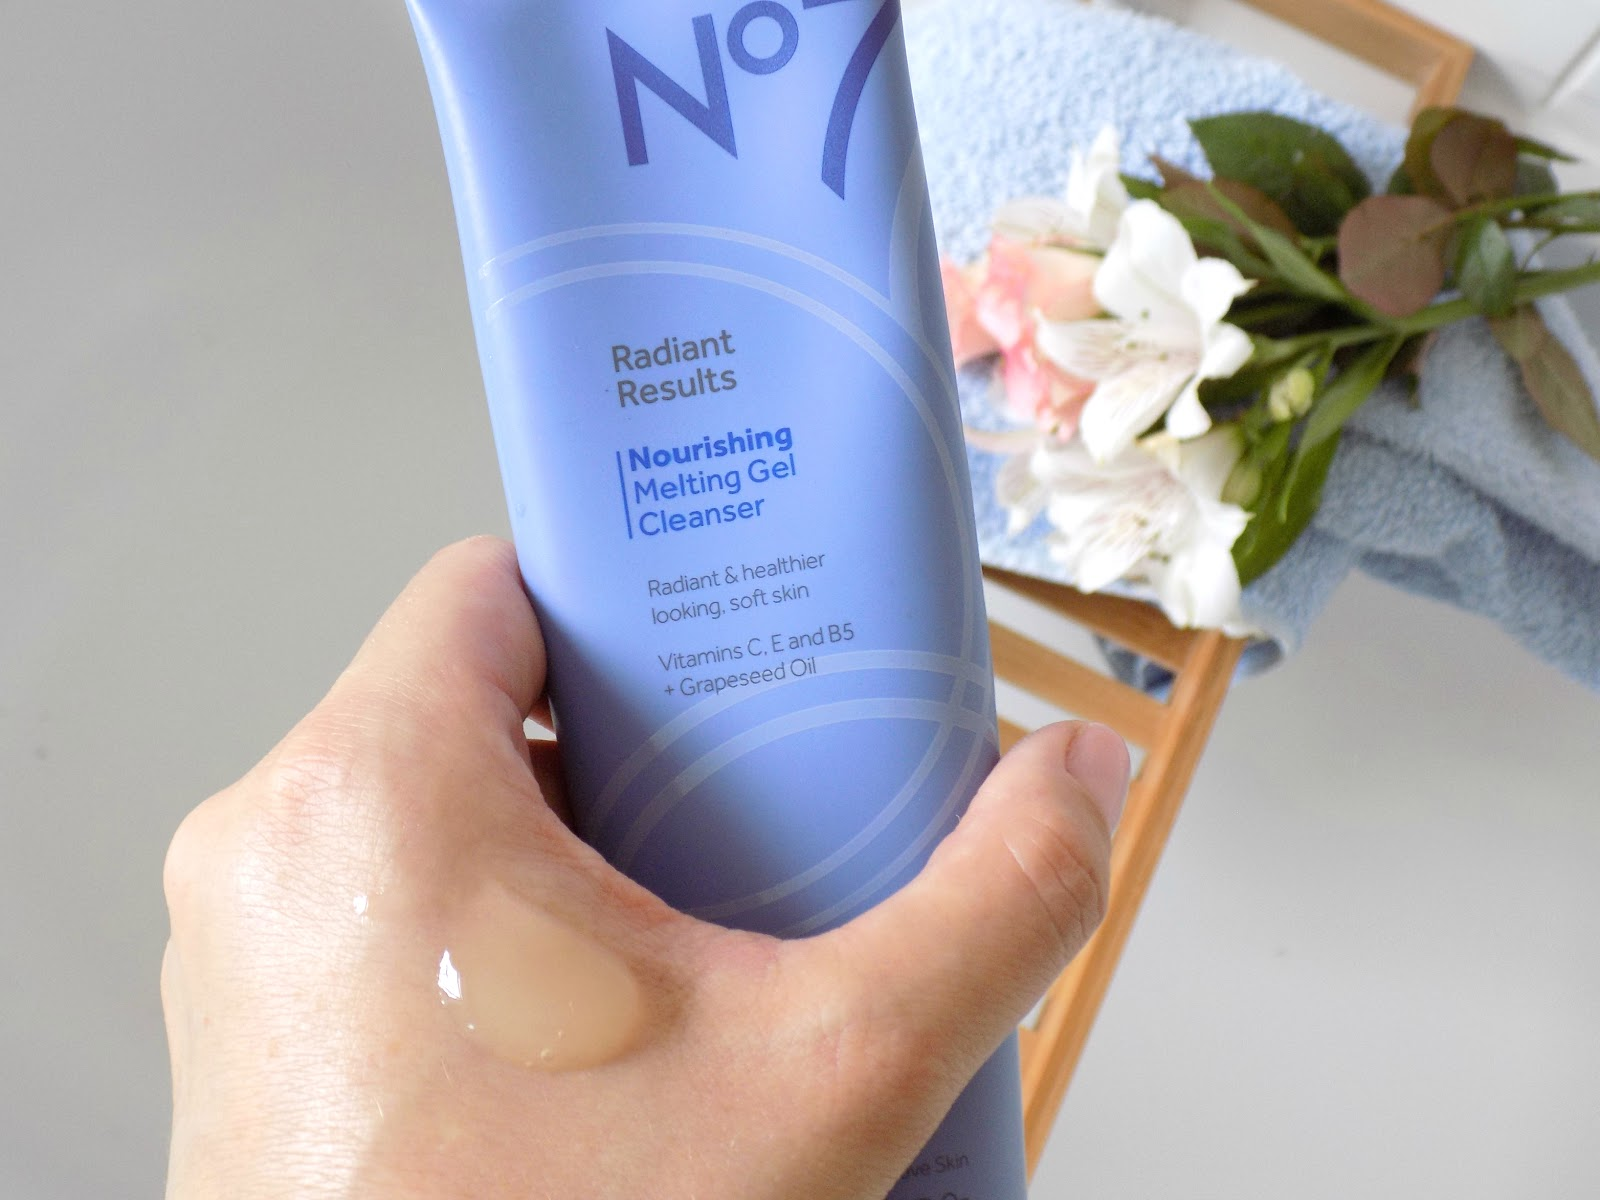 No7 Nourishing Melting Gel Cleanser